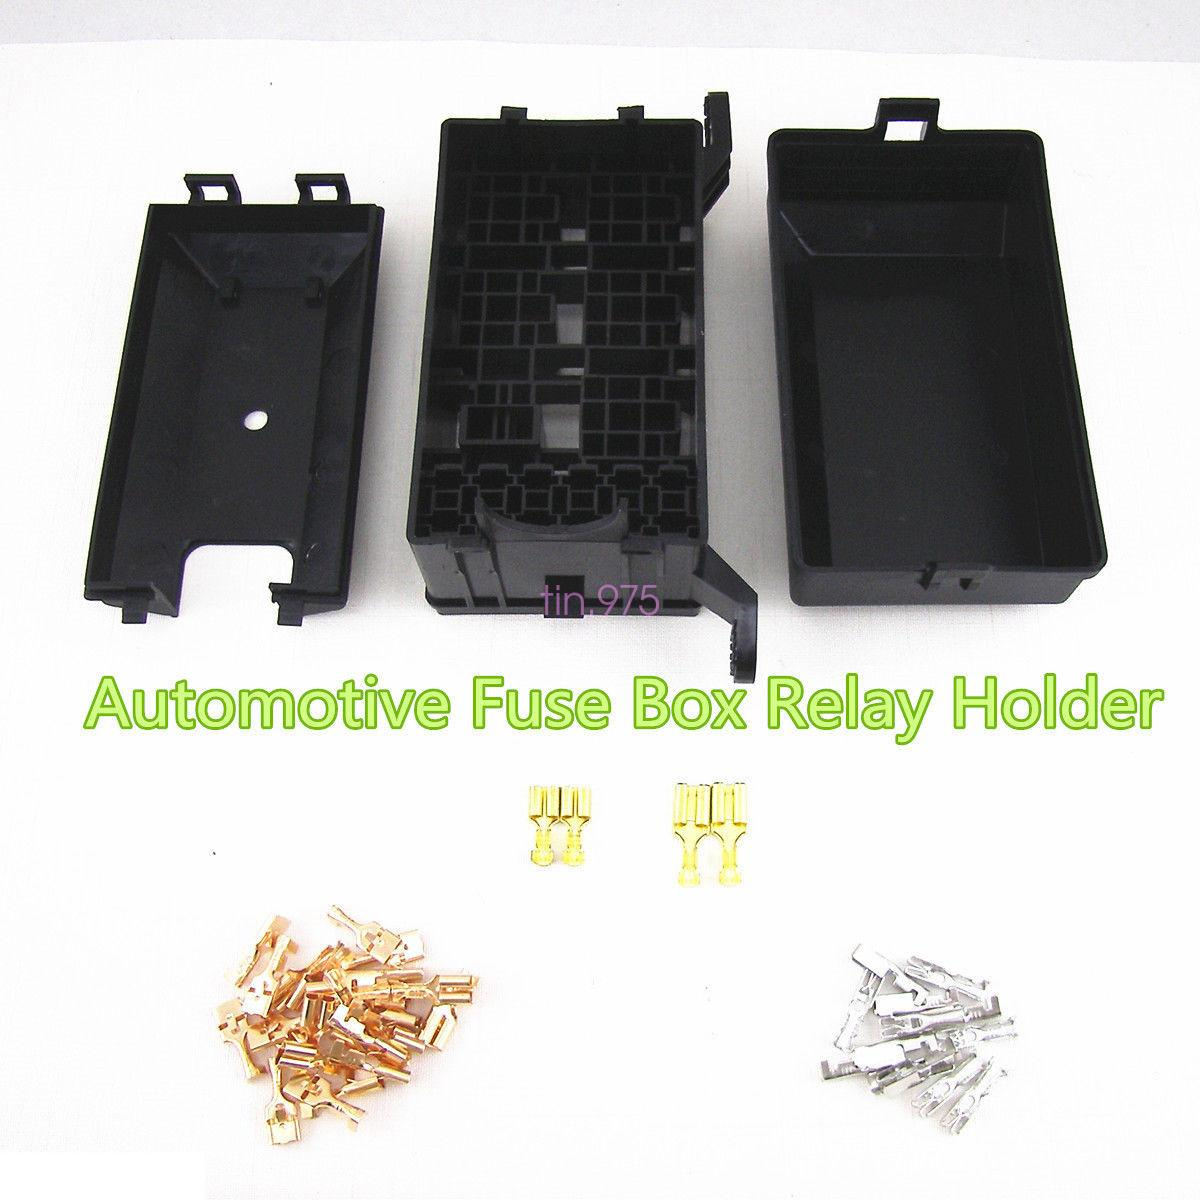 Autos Relay Fuse Box 6 5 Road Compartment Insurance Car 2013 Smart Fortwo Holder